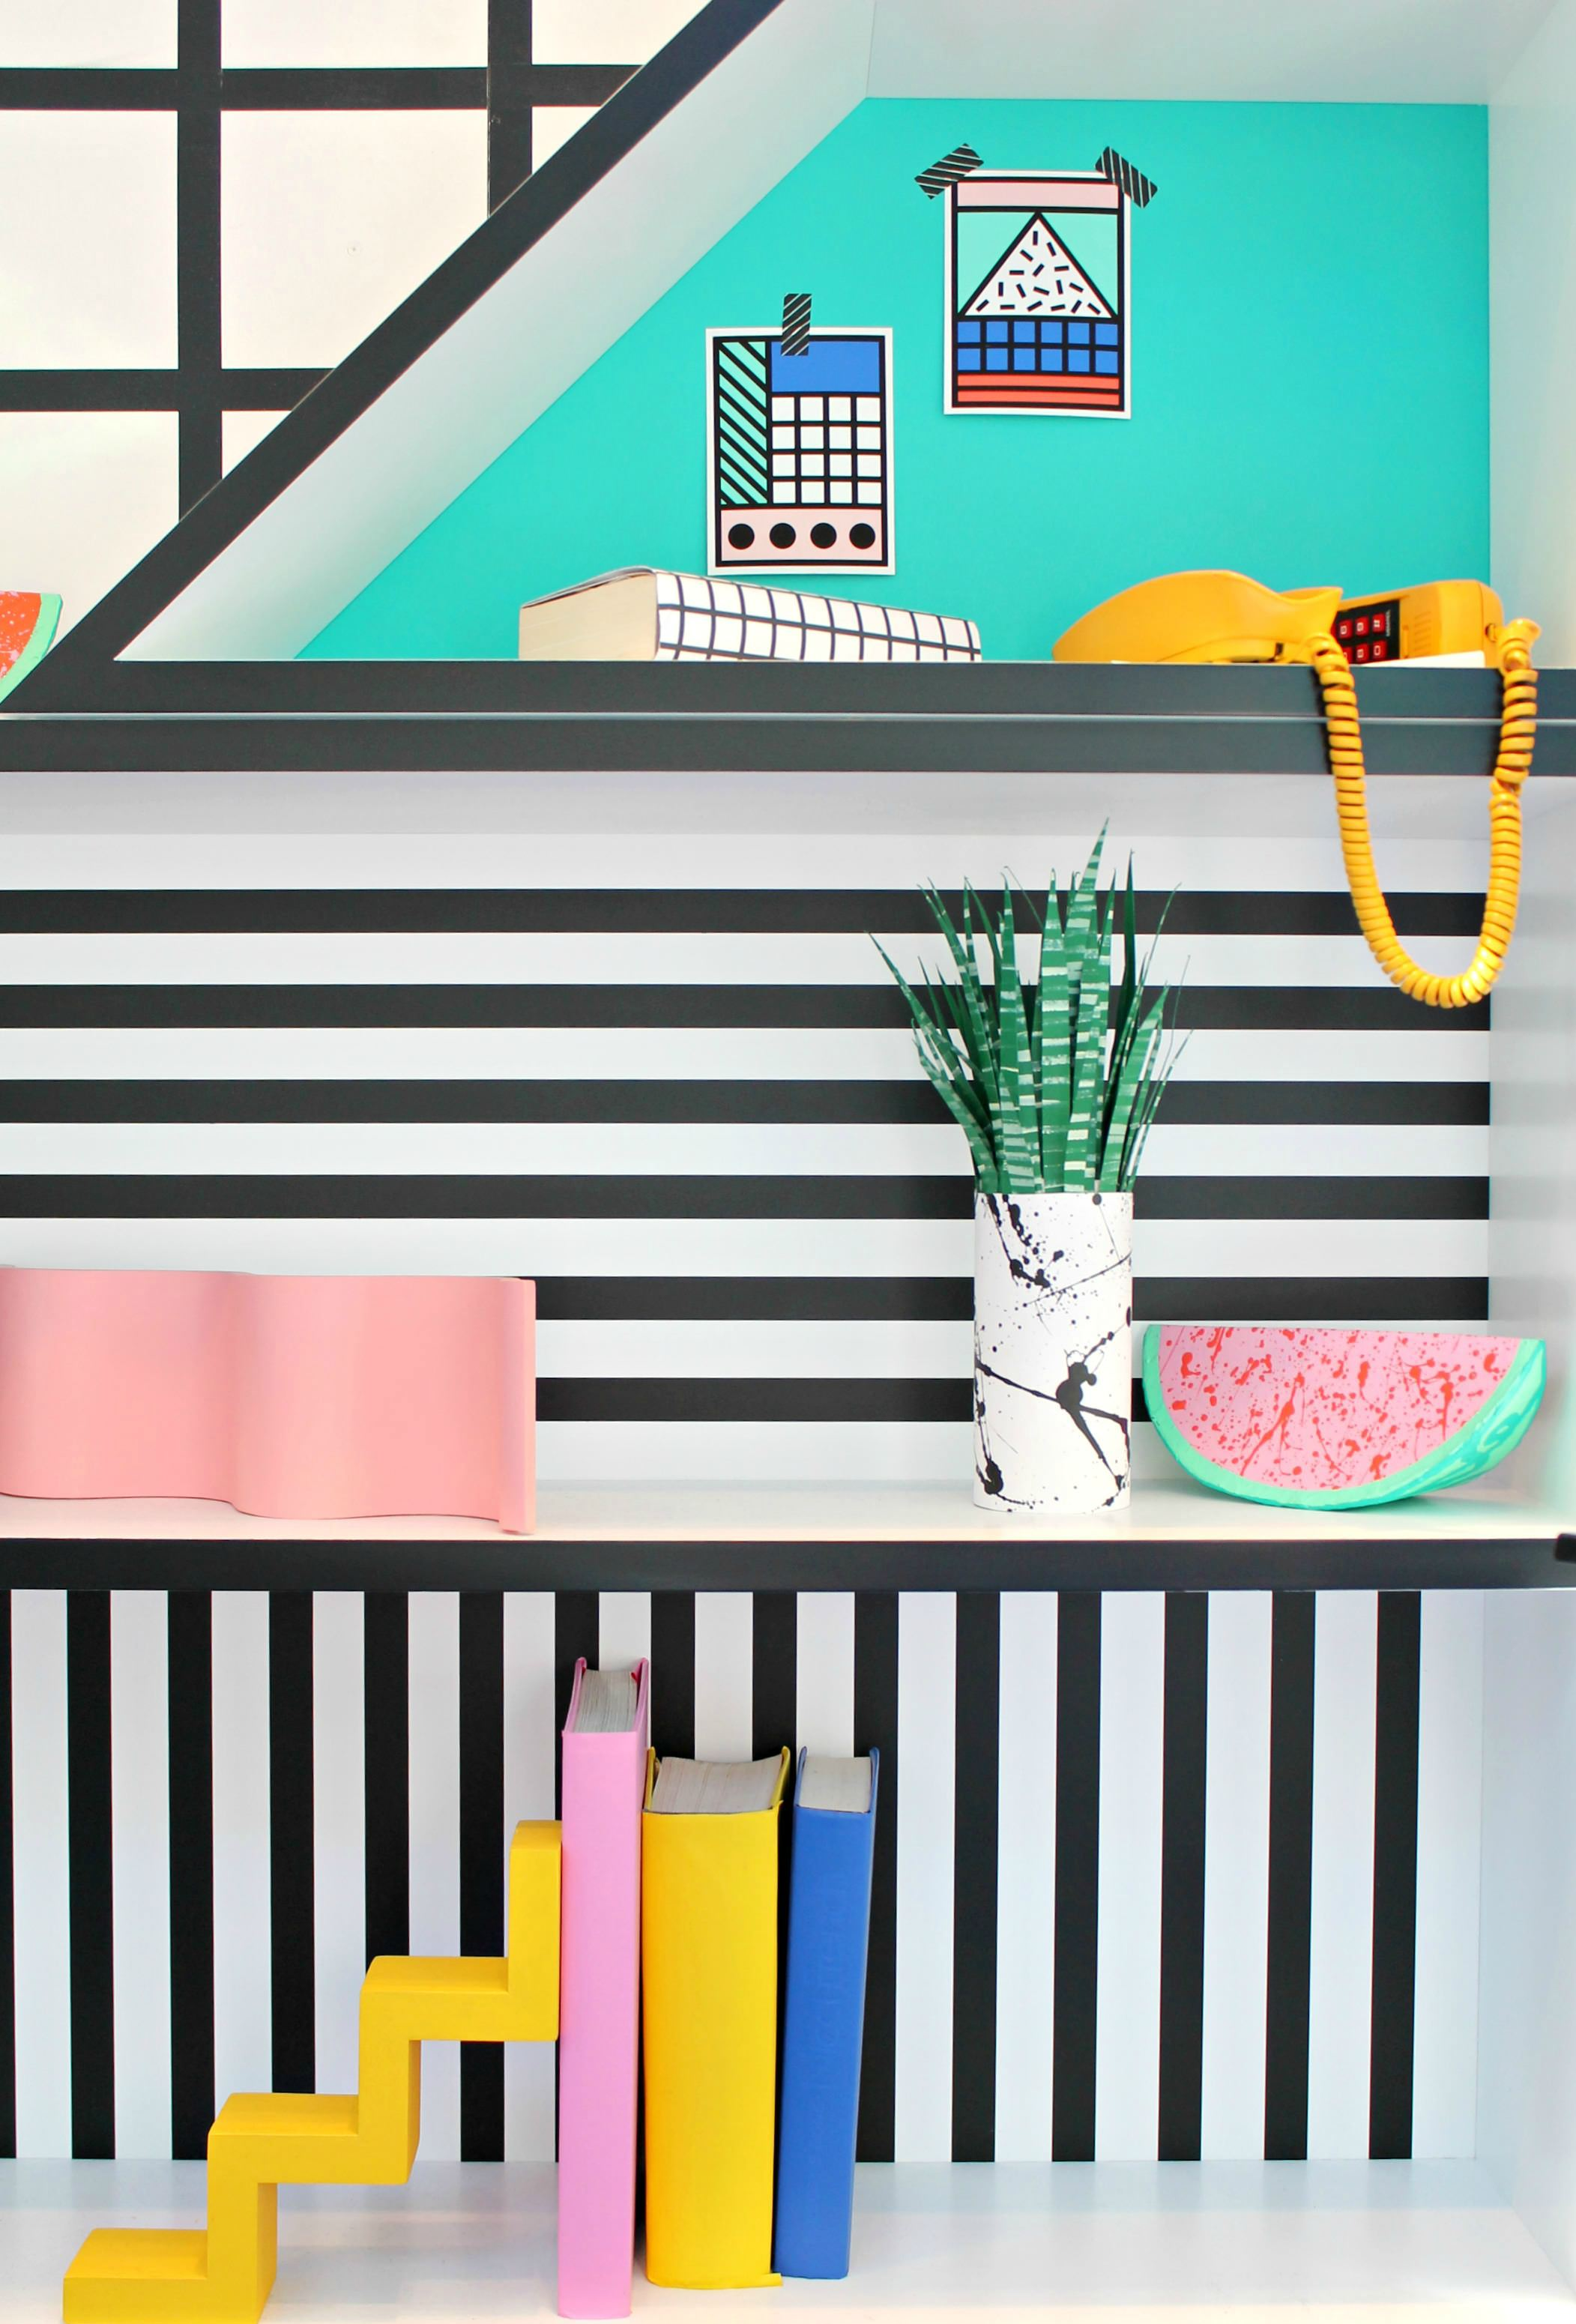 Camille-Walala-at-Aria-–-The-Memphis-trend-wallpaper-wp4003789